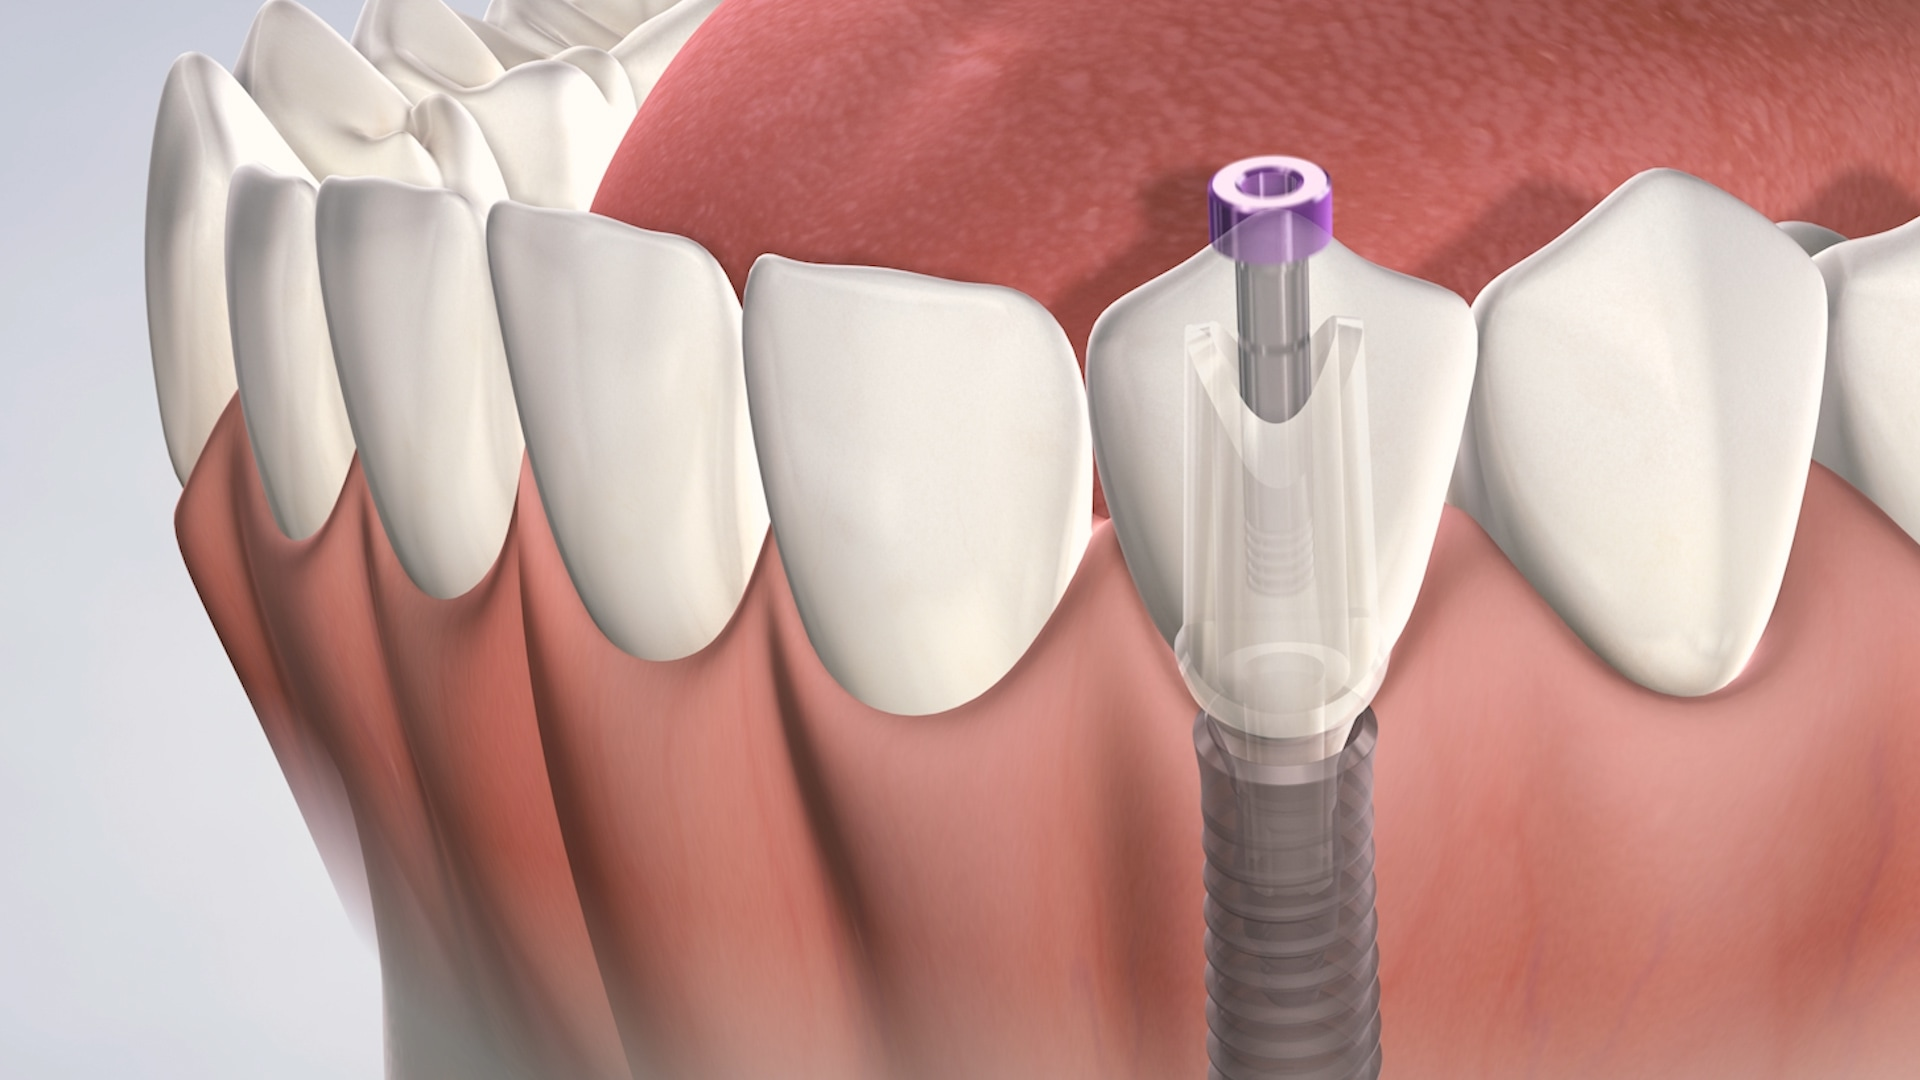 Post Operative Instructions Following Dental Implant Surgery At Oral Surgery Specialists Of Oklahoma